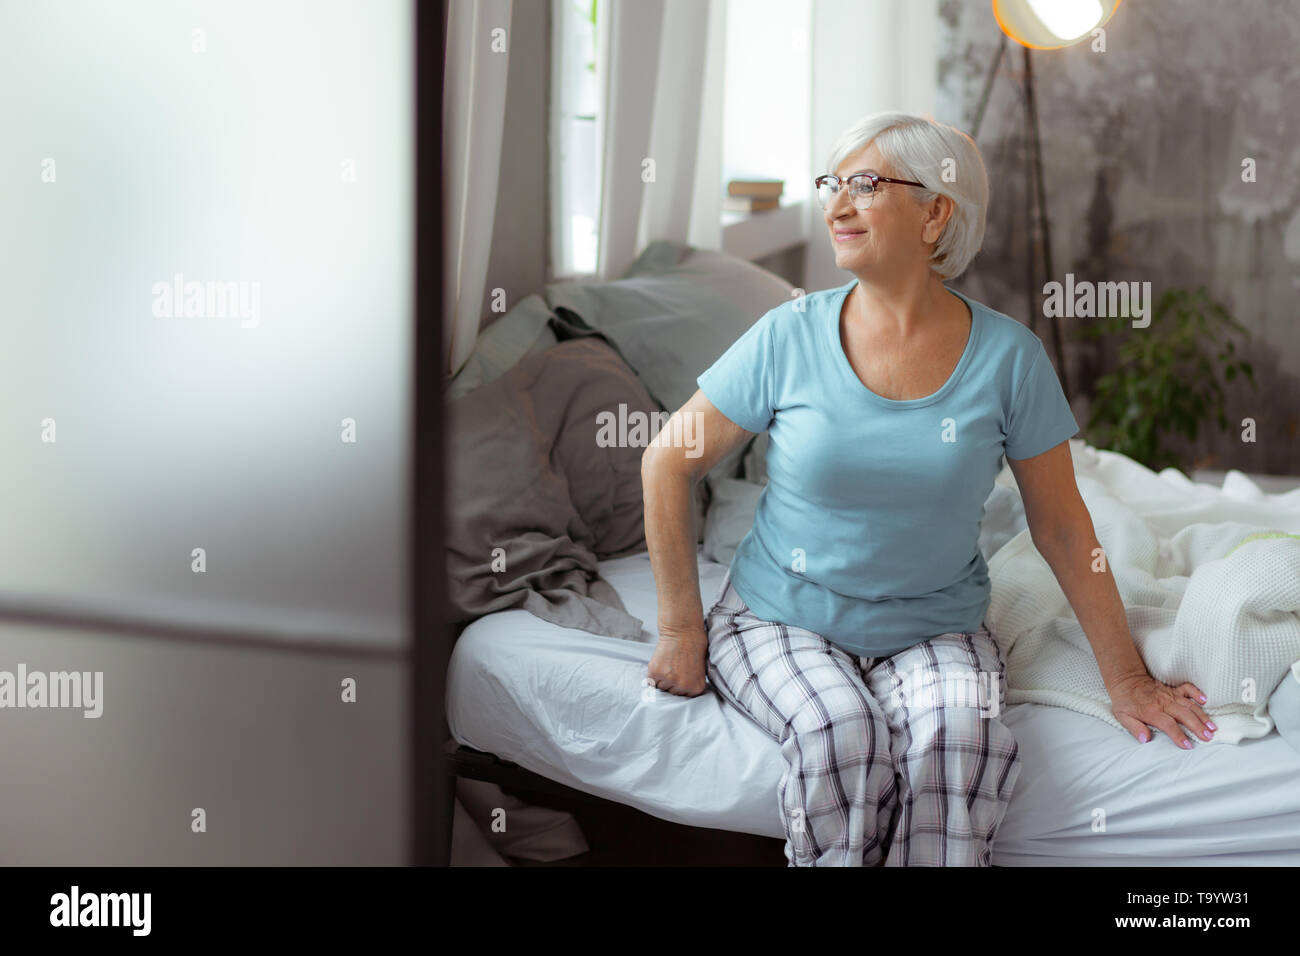 Good-looking woman looking into windows while sitting on the bed. - Stock Image